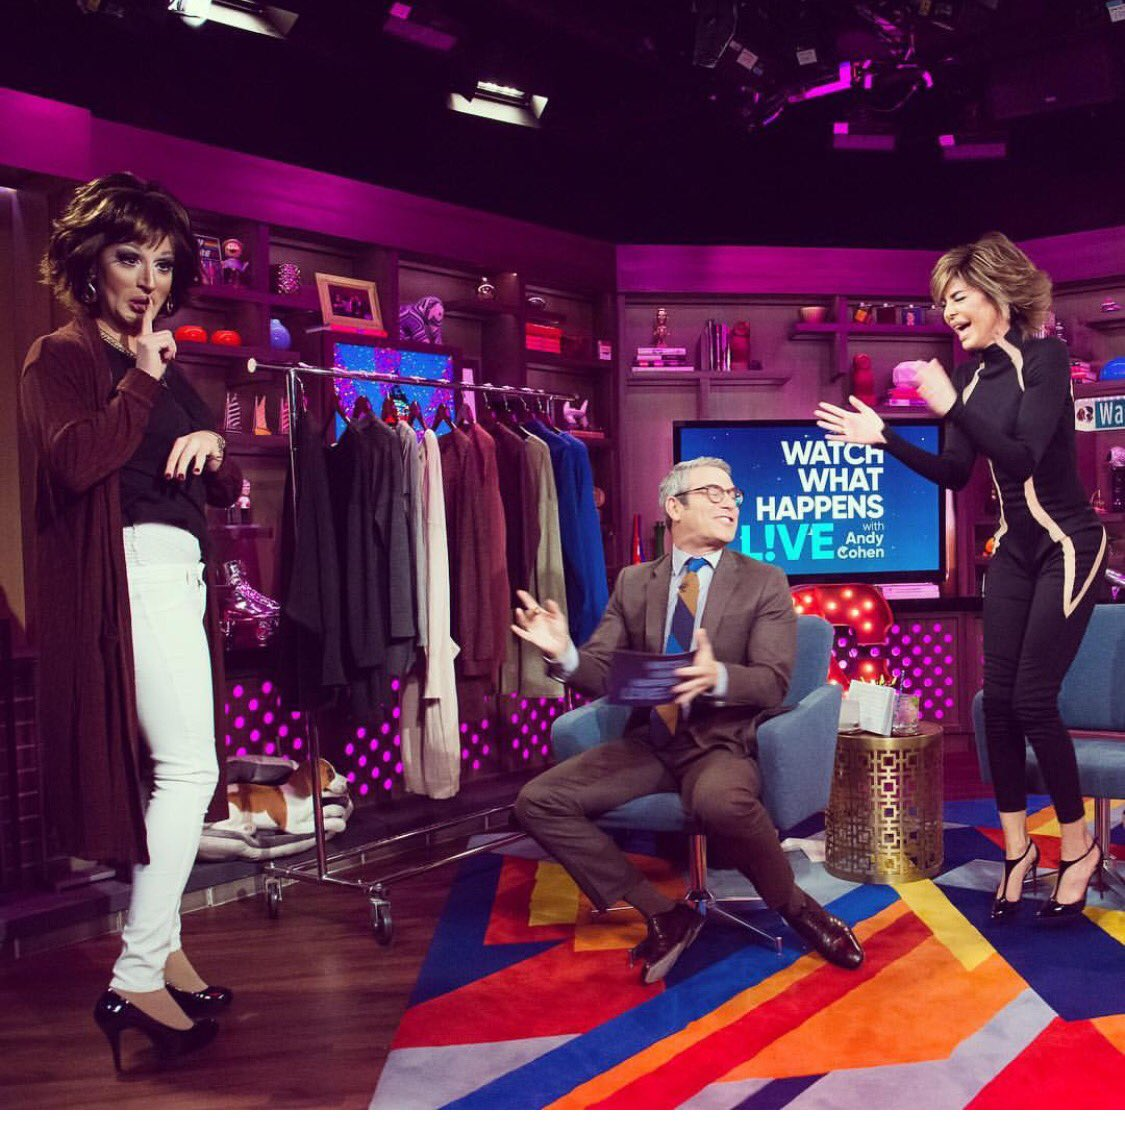 This was epic in the clubhouse. #DusterCardigan #DragQueen #Wewon @Qvc https://t.co/C5j07TPCO9